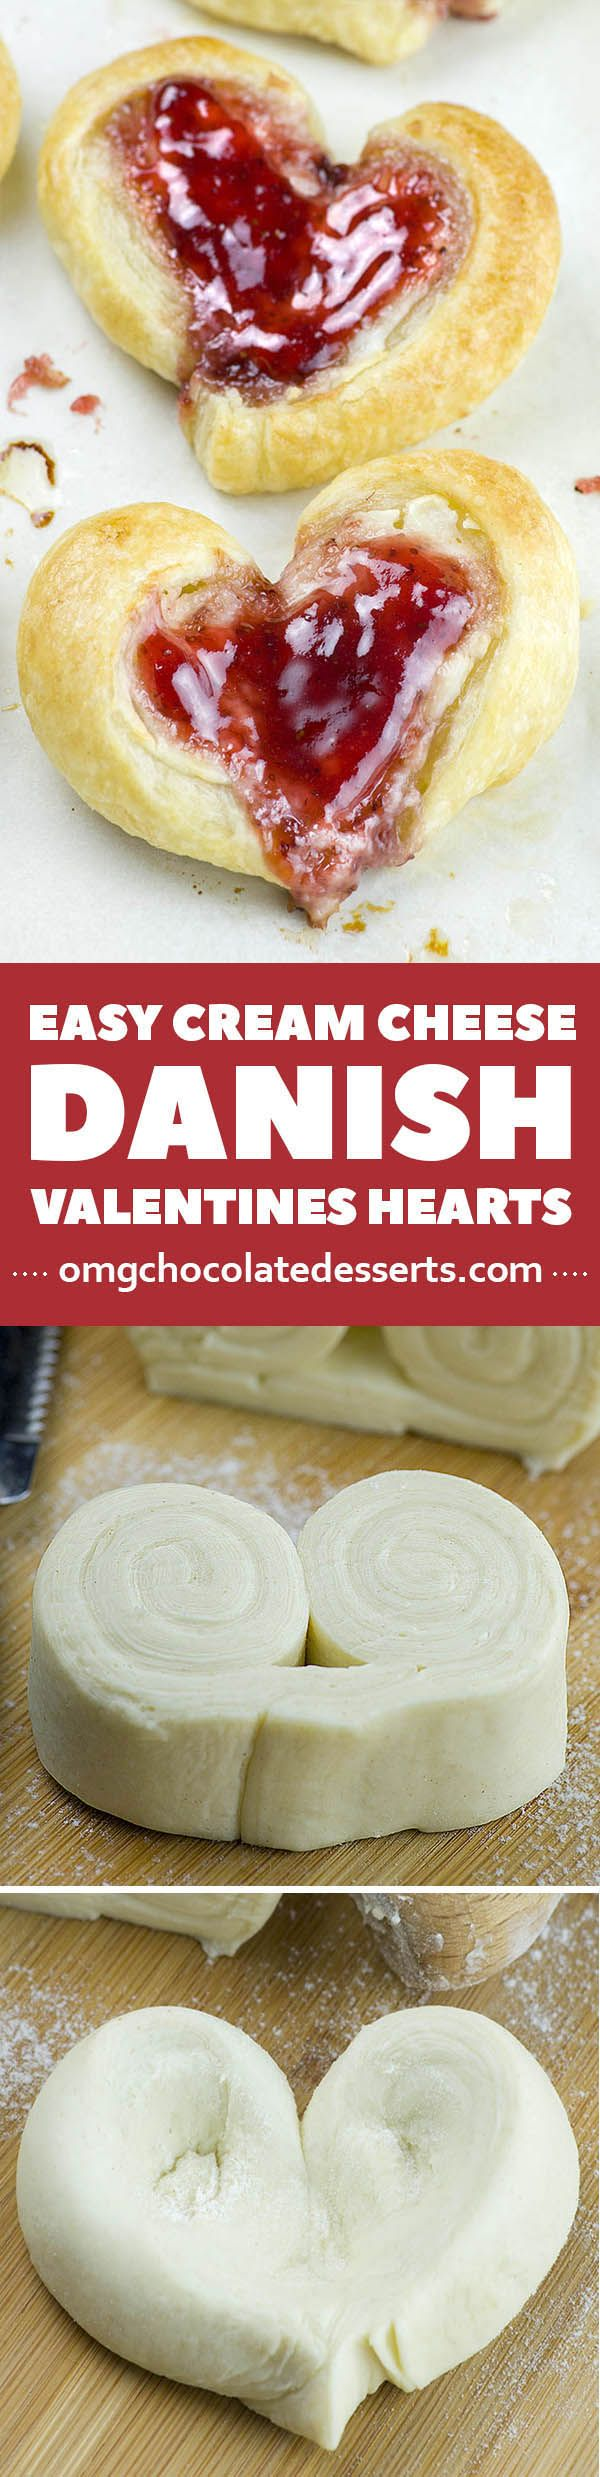 These adorable Easy Cream Cheese Danish Valentine's Hearts are perfect Valentines breakfast idea!!!